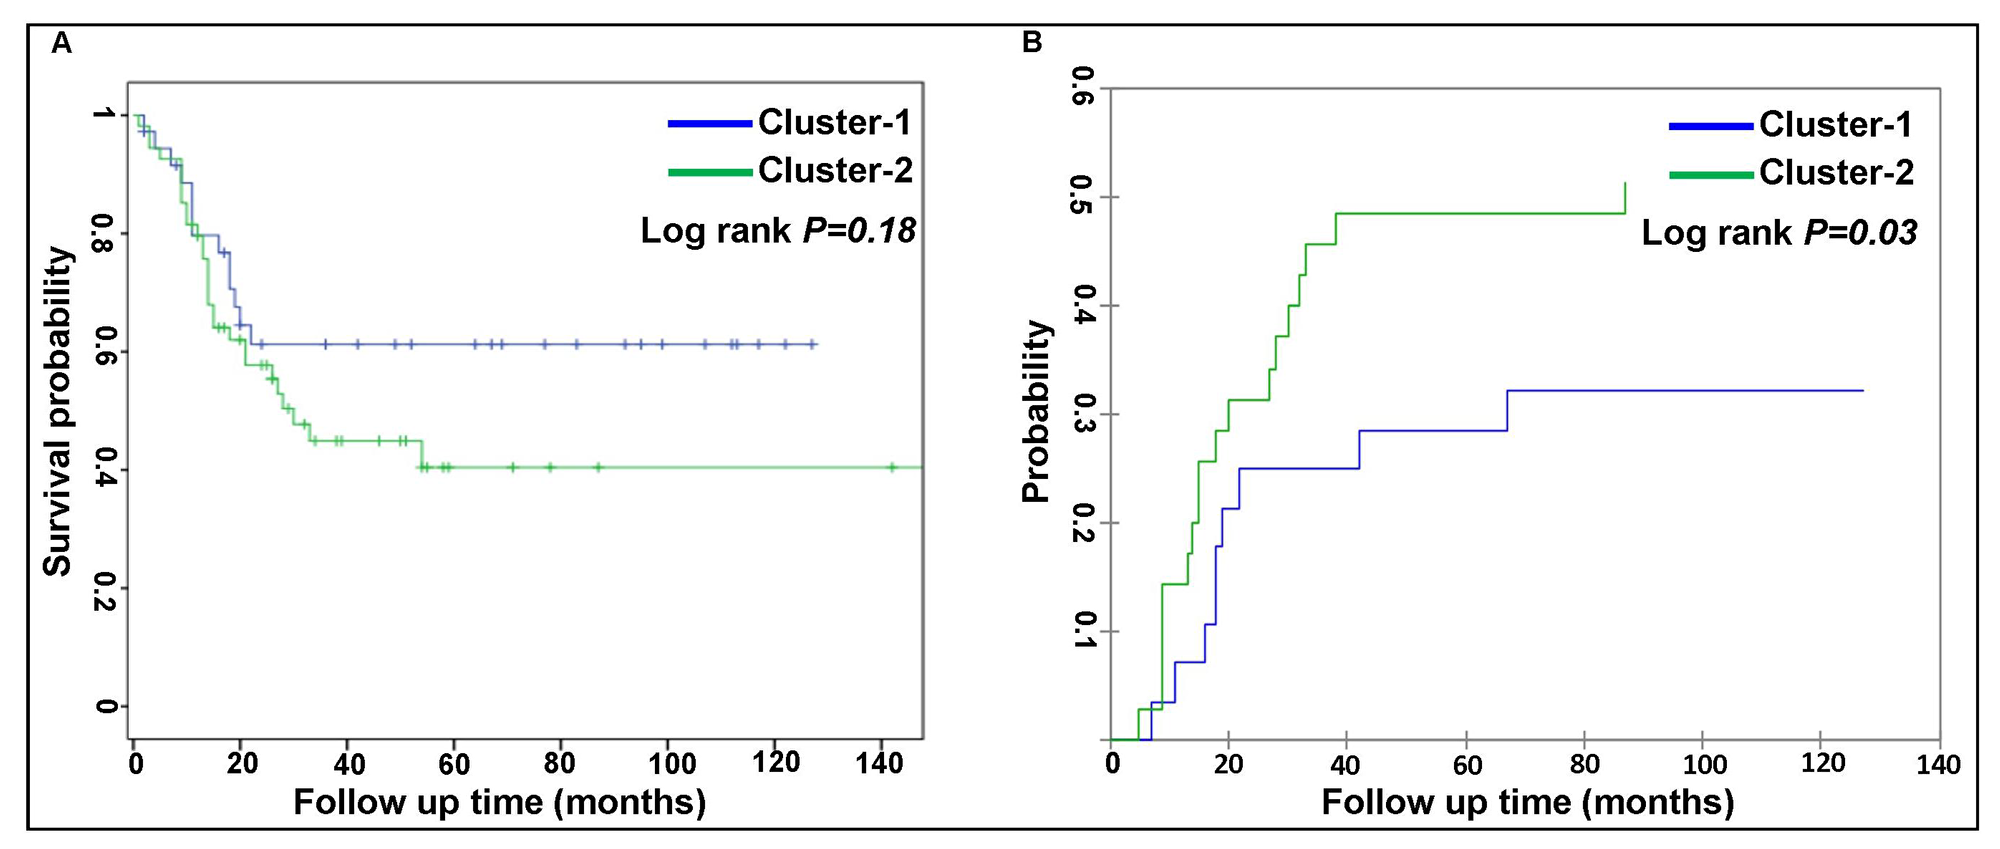 Comparison of patient outcome between two AML clusters.